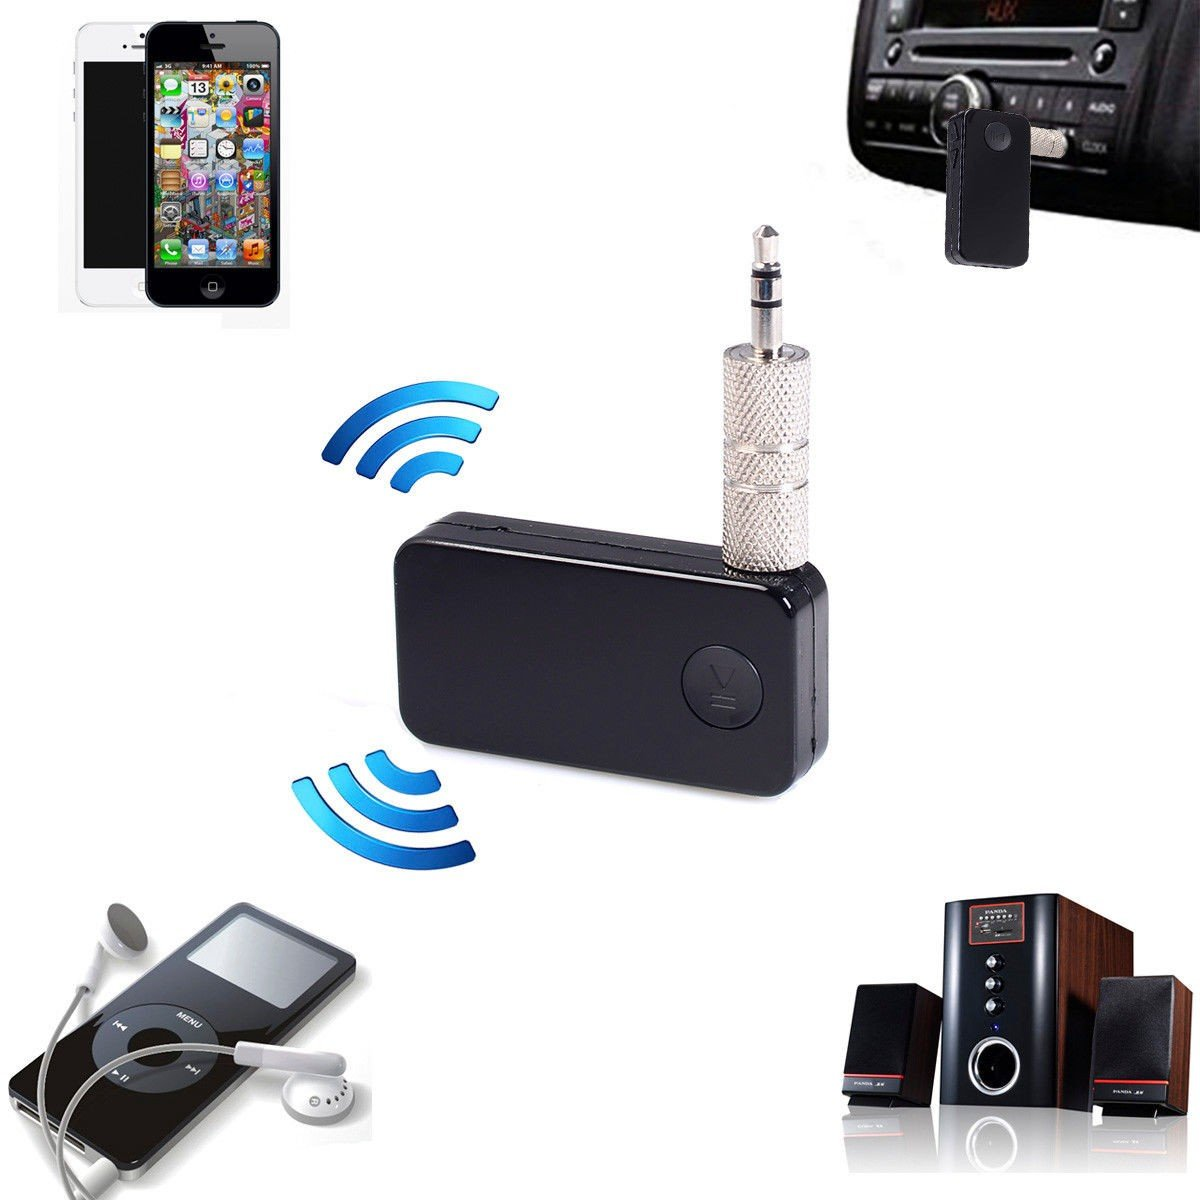 S AFSTAR Bluetooth Receiver Car Kit Safstar Portable Wireless Audio Adapter 3.5 mm Stereo Output for Home Audio Music Streaming Sound System LYSB01CXO3KAC-ELECTRNCS Bluetooth 3.0, A2DP, Built-in Microphone